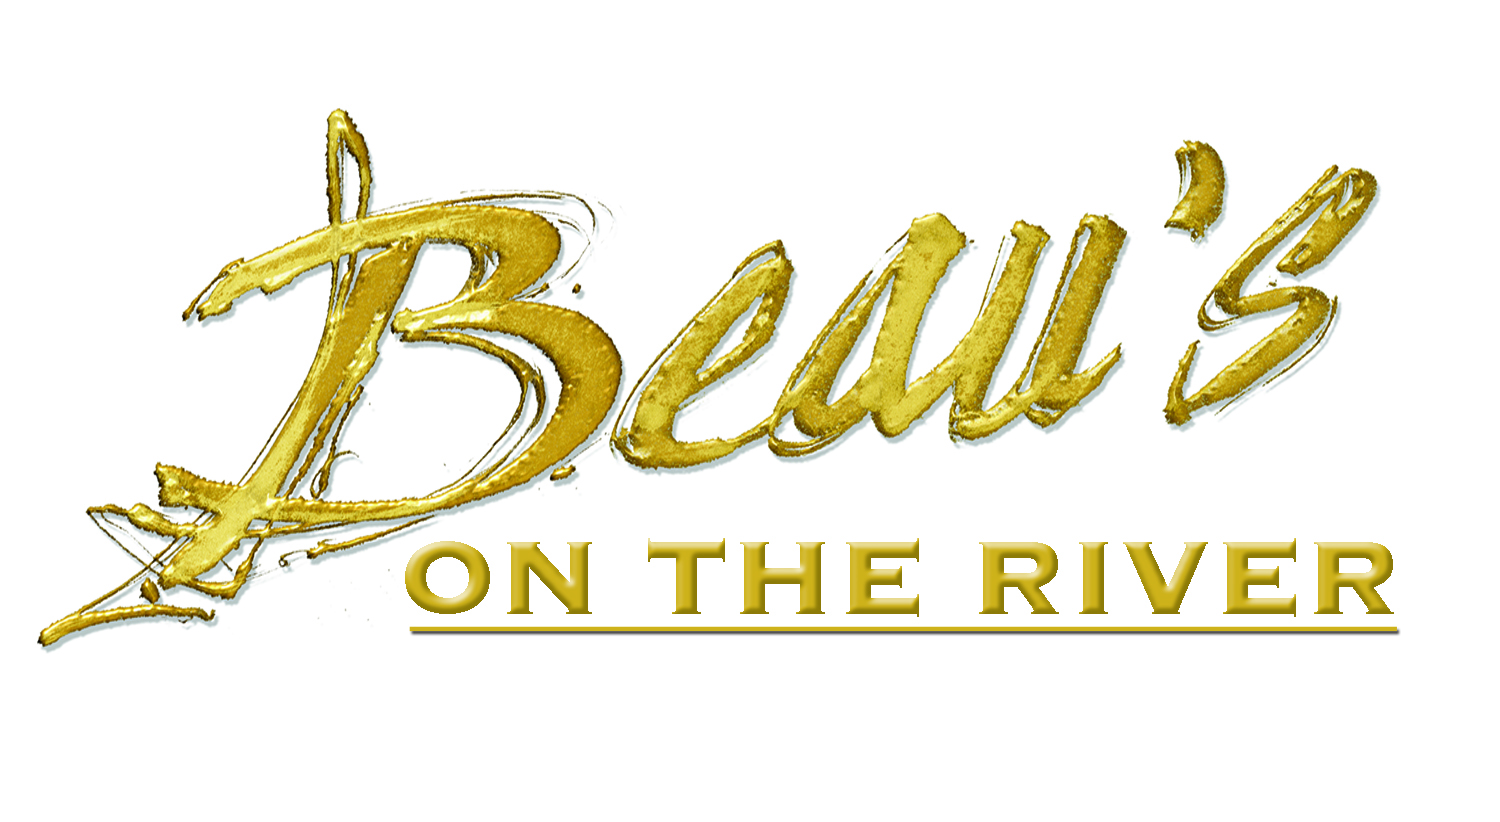 Beau's On the River